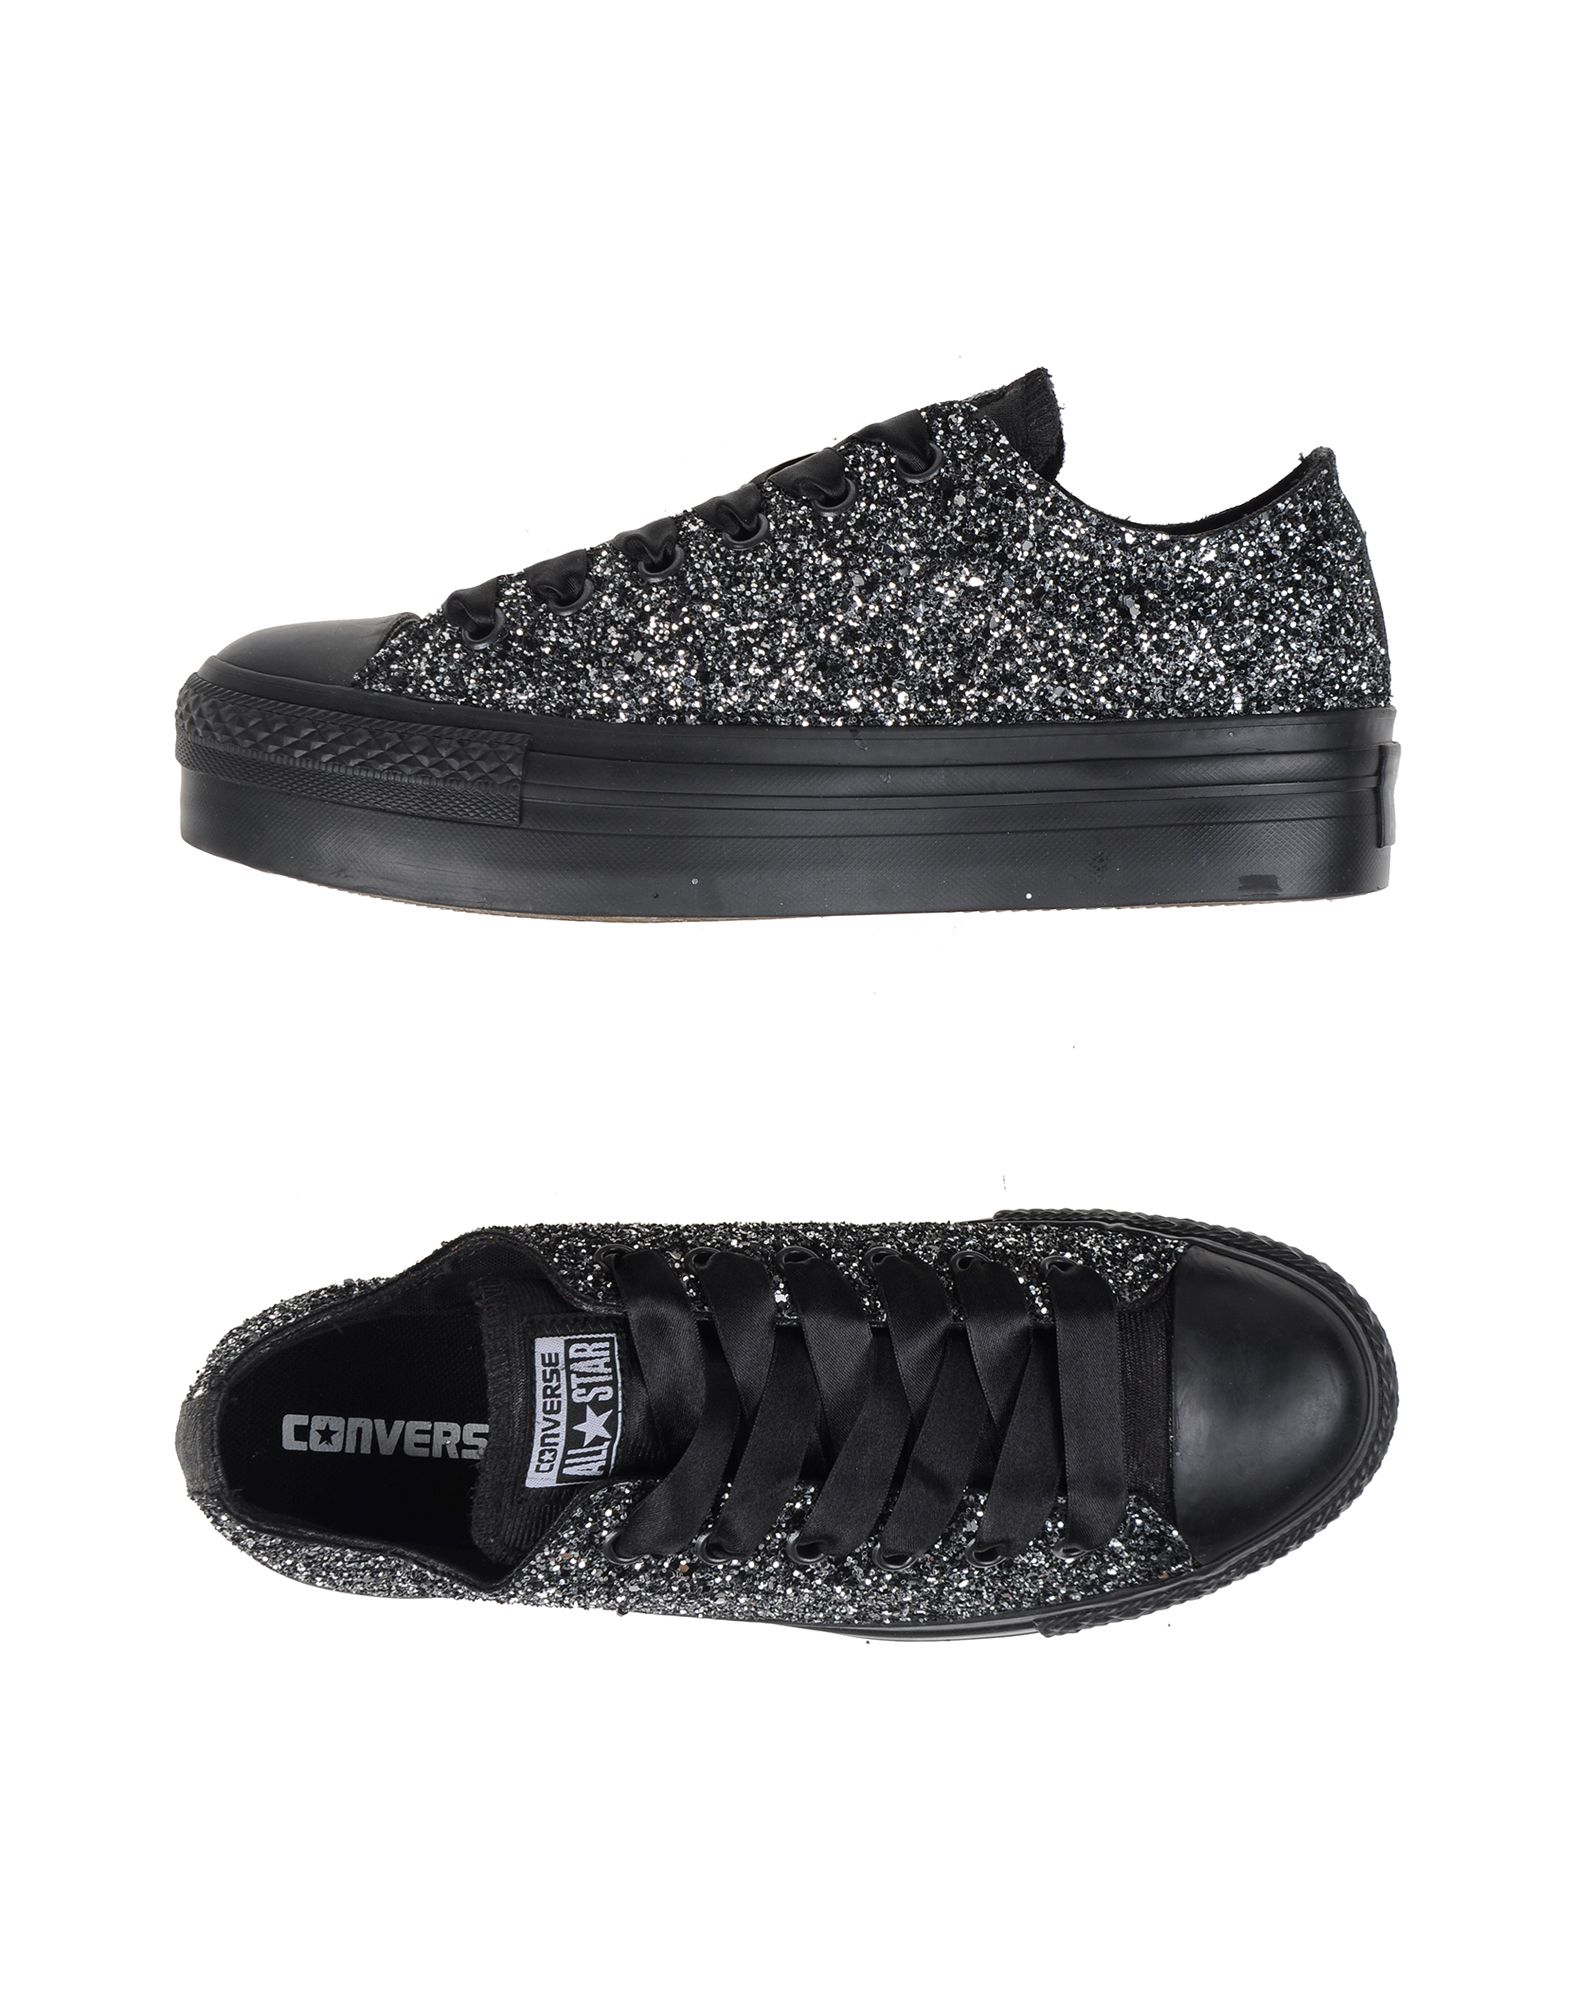 Sneakers Converse Limited Edition All Star Ox Platform Canva Ltd - Donna - 11095531JU